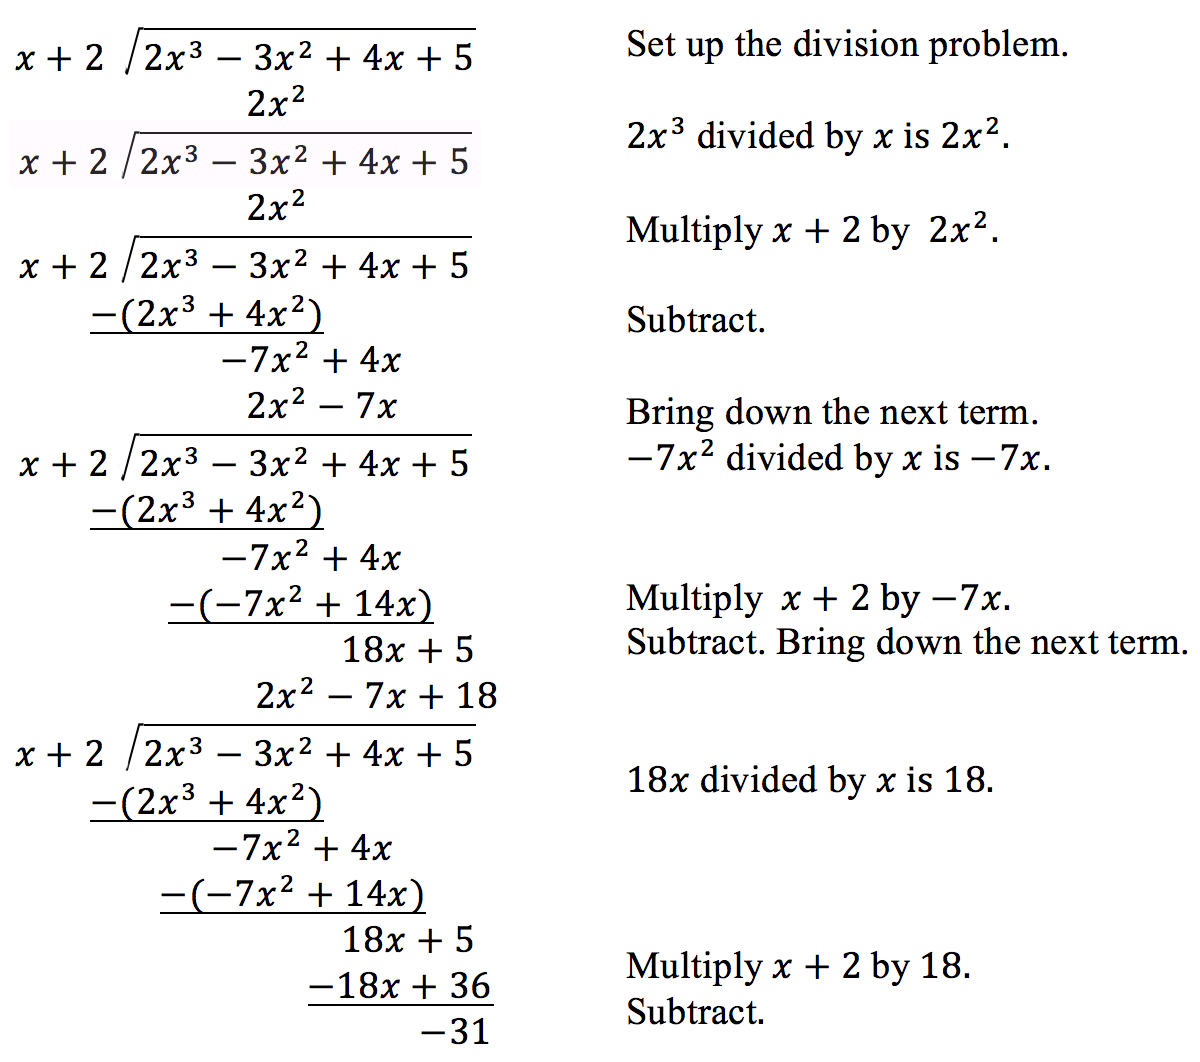 Set up the division problem. 2x cubed divided by x is 2x squared. Multiply the sum of x and 2 by 2x squared. Subtract. Then bring down the next term. Negative 7x squared divided by x is negative 7x. Multiply the sum of x and 2 by negative 7x. Subtract, then bring down the next term. 18x divided by x is 18. Multiply the sum of x and 2 by 18. Subtract.